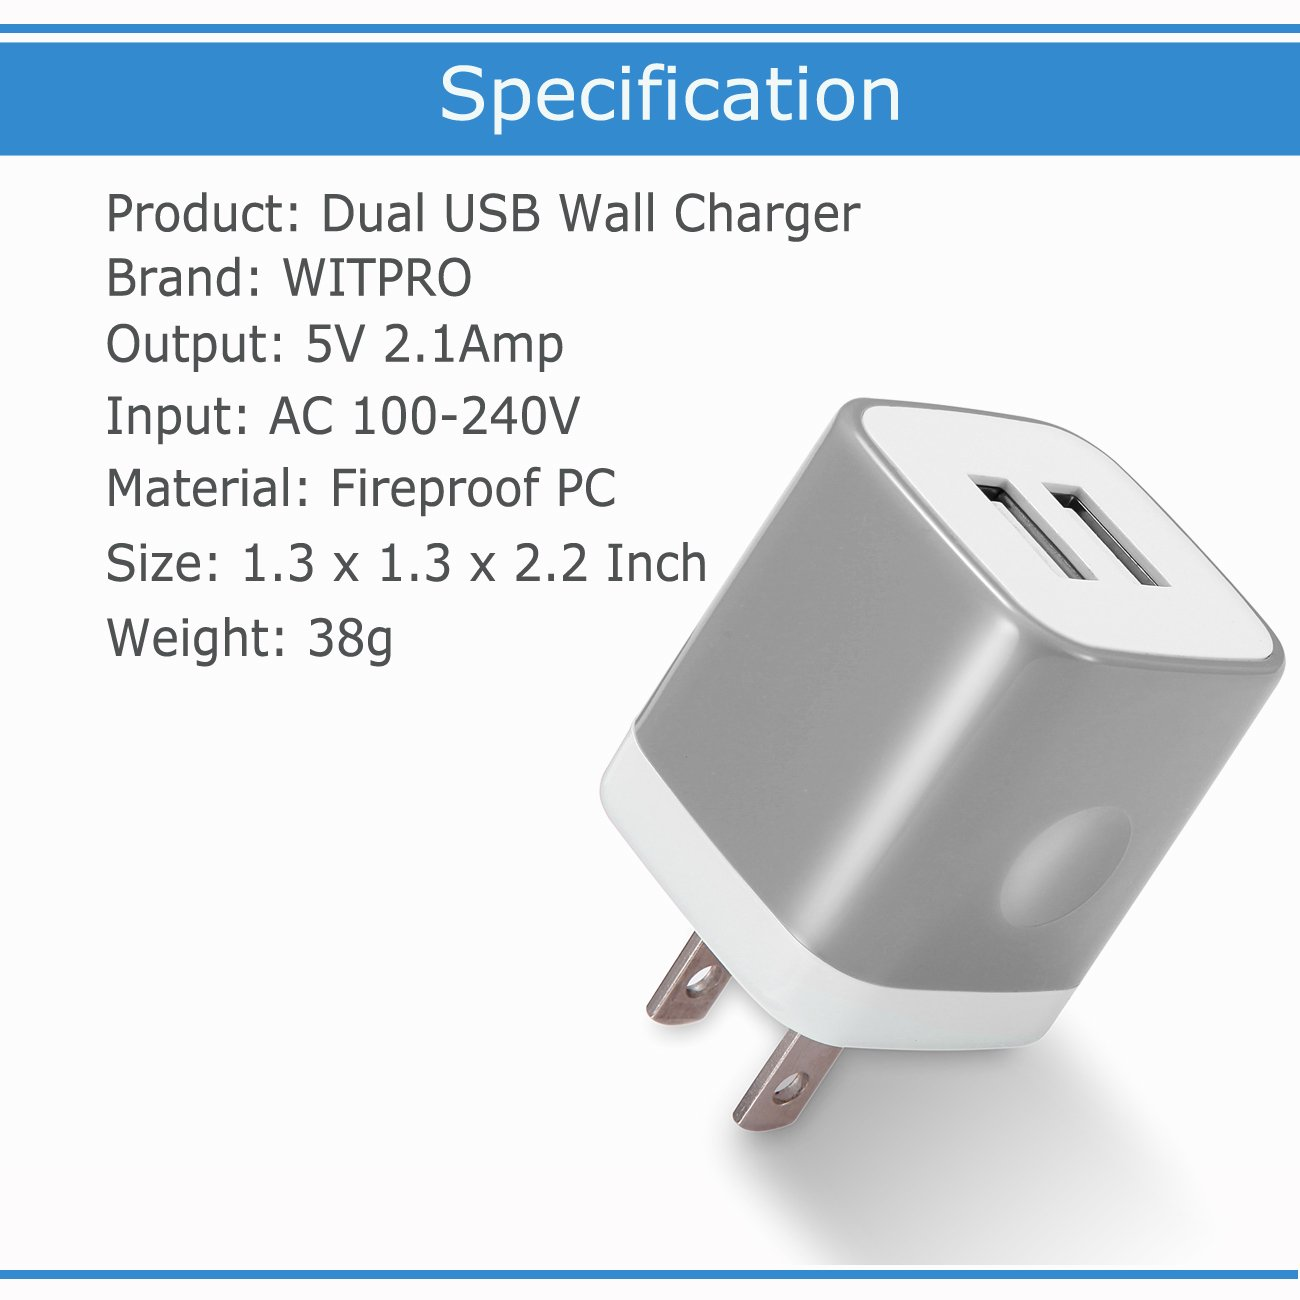 USB Wall Charger 3-Pack, WITPRO 2.1A/5V Smart Dual Port USB Plug Power Adapter Charging Block for iPhone X/8/7/6S Plus SE/5C, Samsung, HTC, LG, Huawei, Moto G Z, More (Grey) by WITPRO (Image #4)